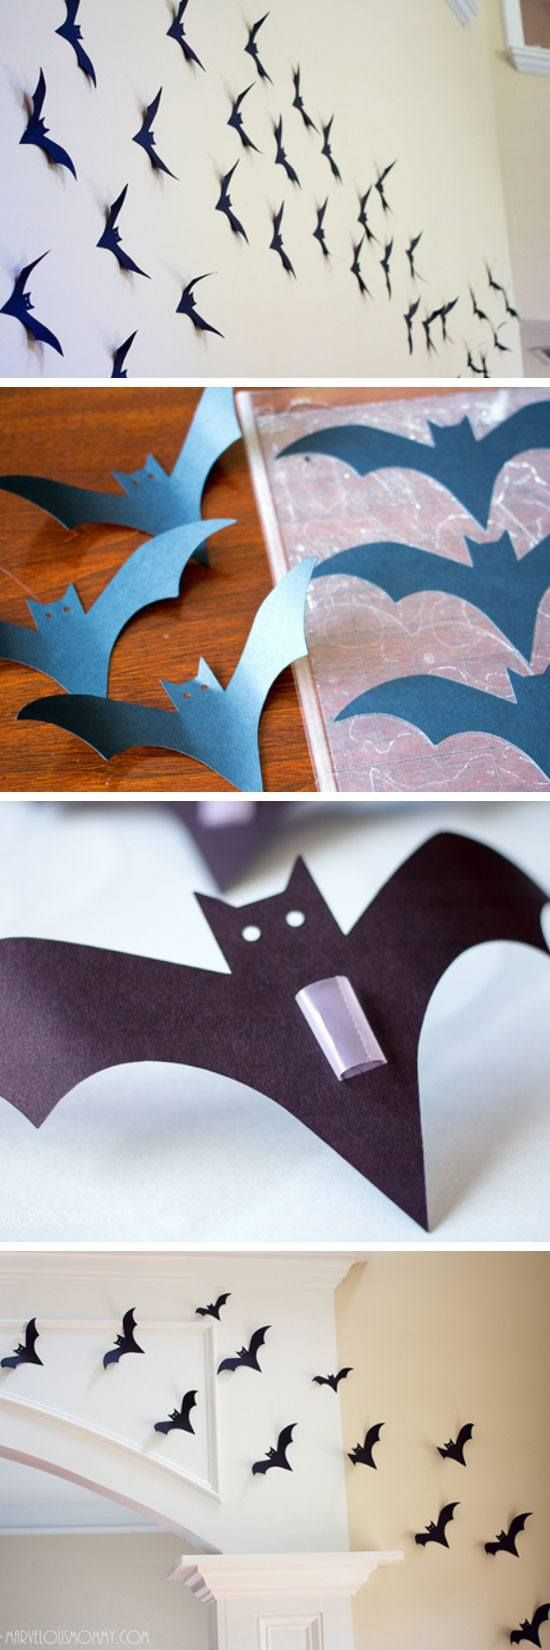 25 diy halloween decorating ideas for kids on a budget - Cheap Easy Halloween Decorating Ideas